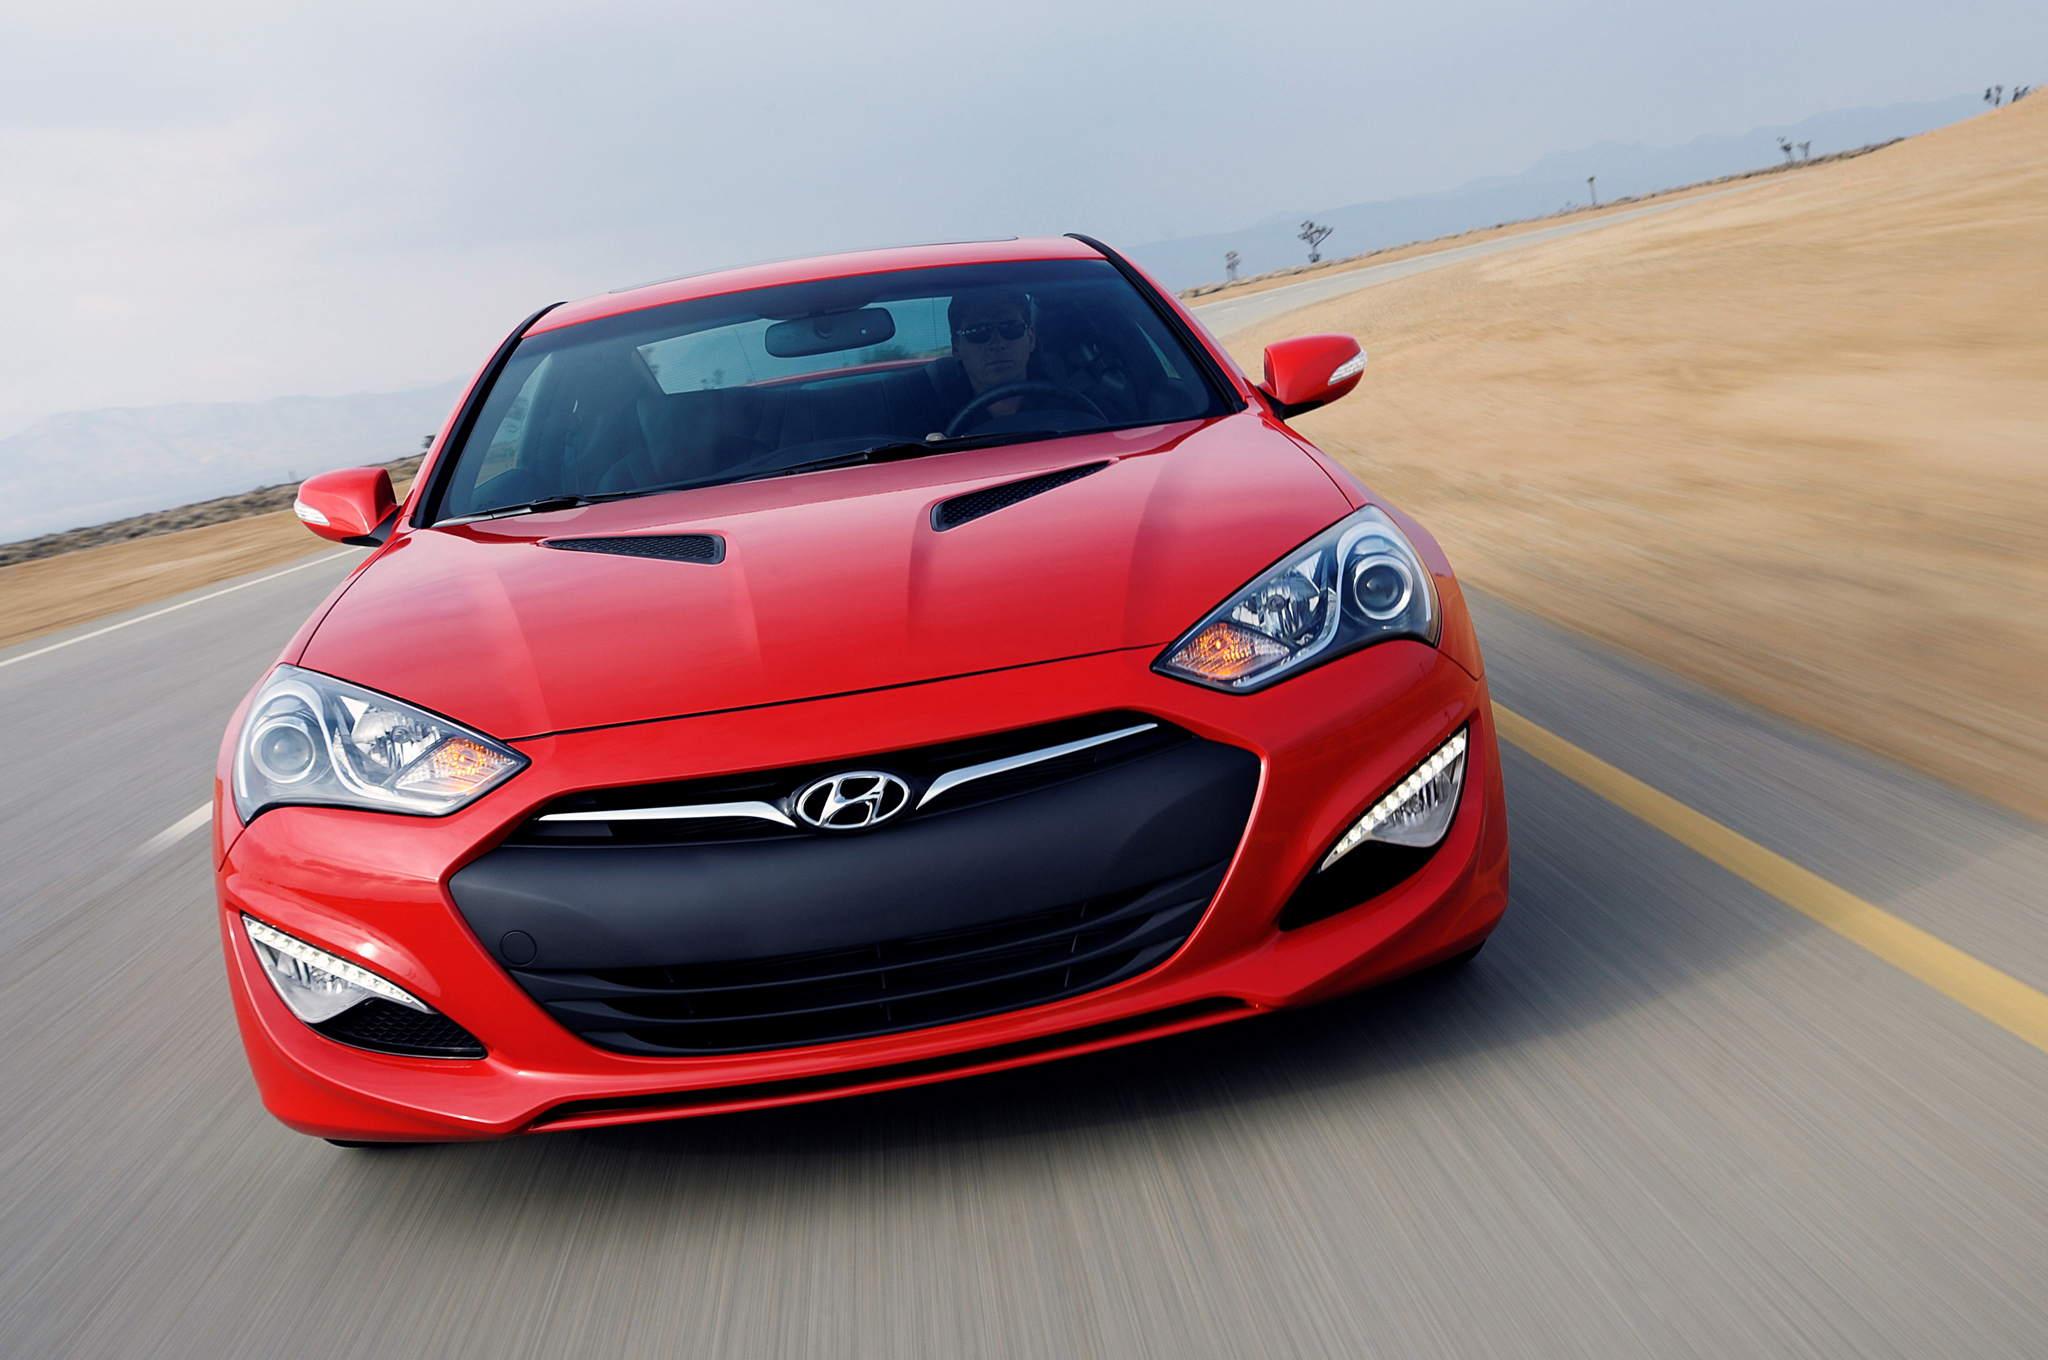 Hyundai Genesis Coupe To Be Discontinued After 2016 Model Year